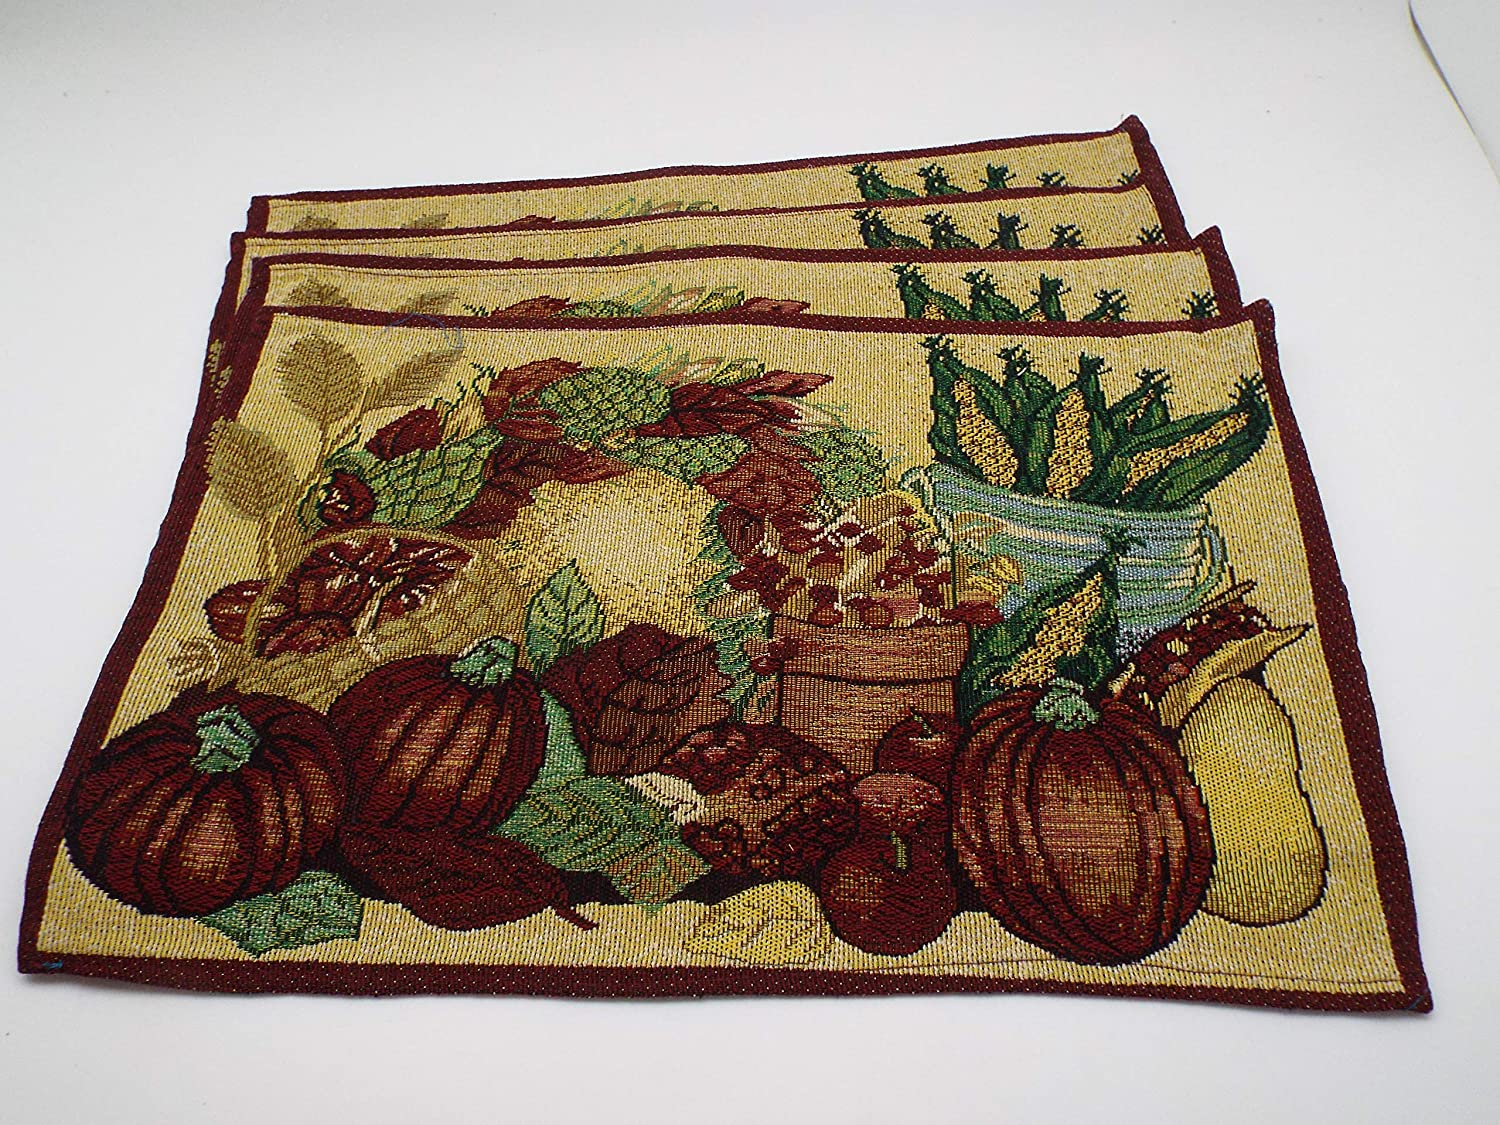 Bristola Home Designs Harvest Theme Tapestry Table Placemats - Set of 4-13 x 19 inches